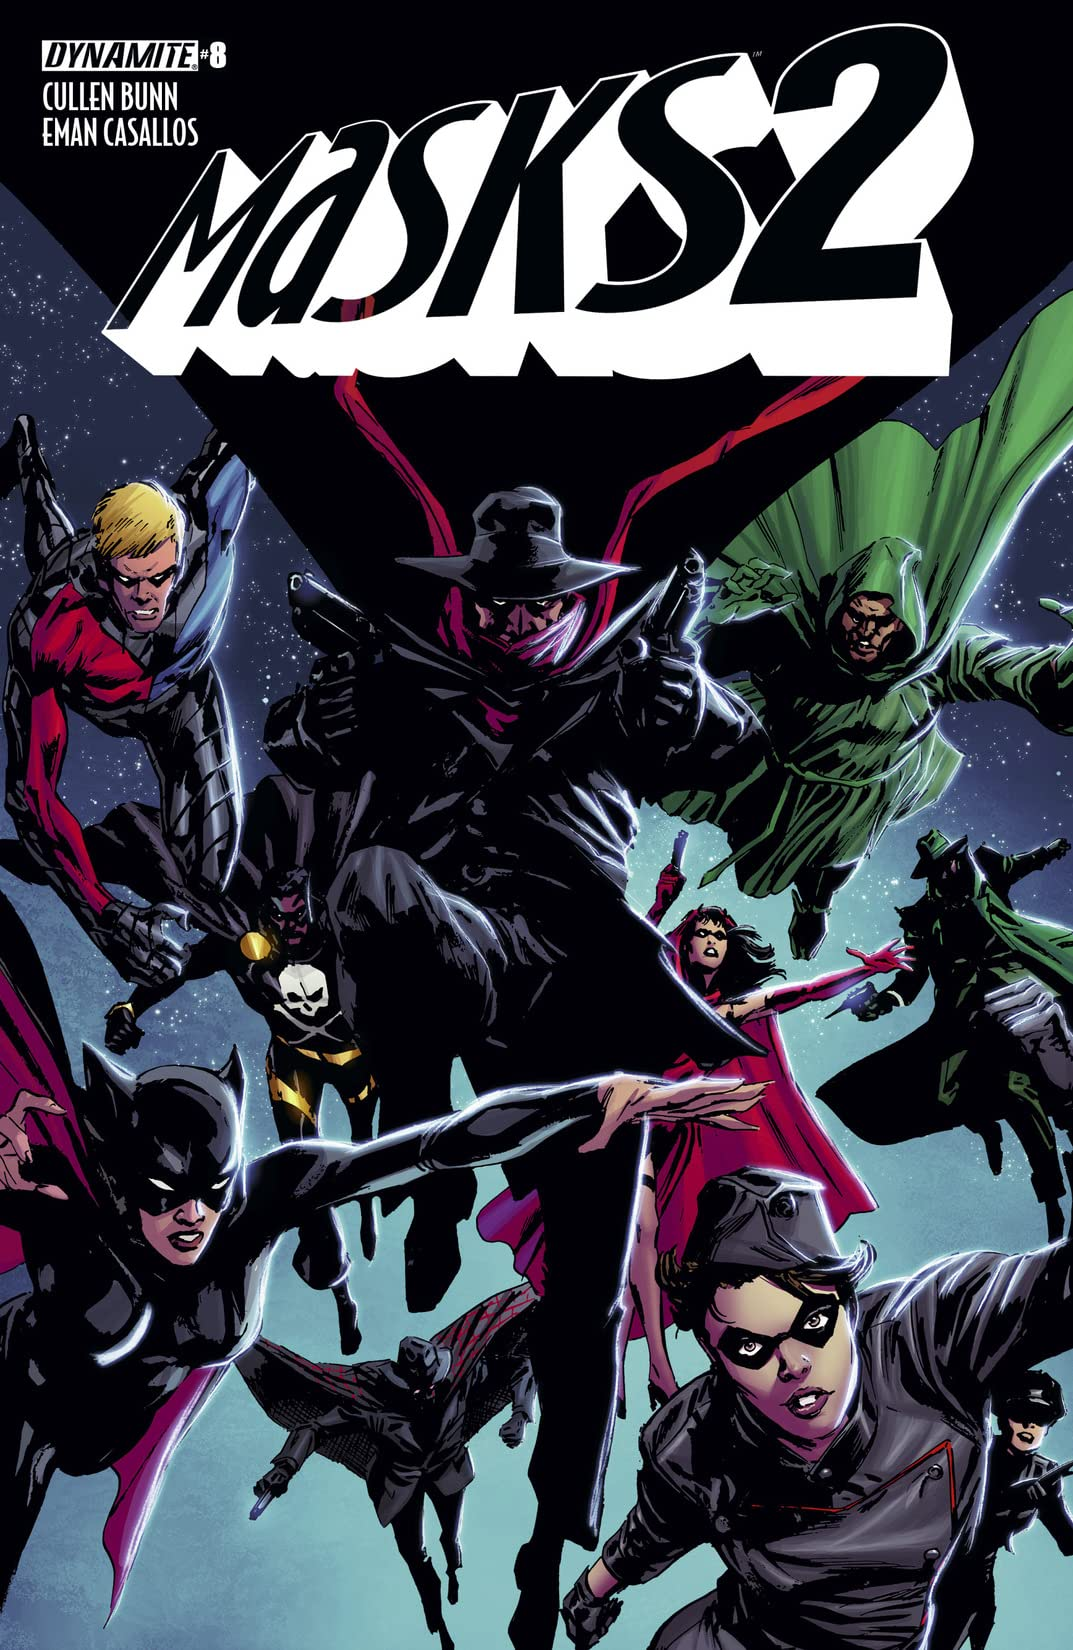 Masks 2 #8 (of 8): Digital Exclusive Edition